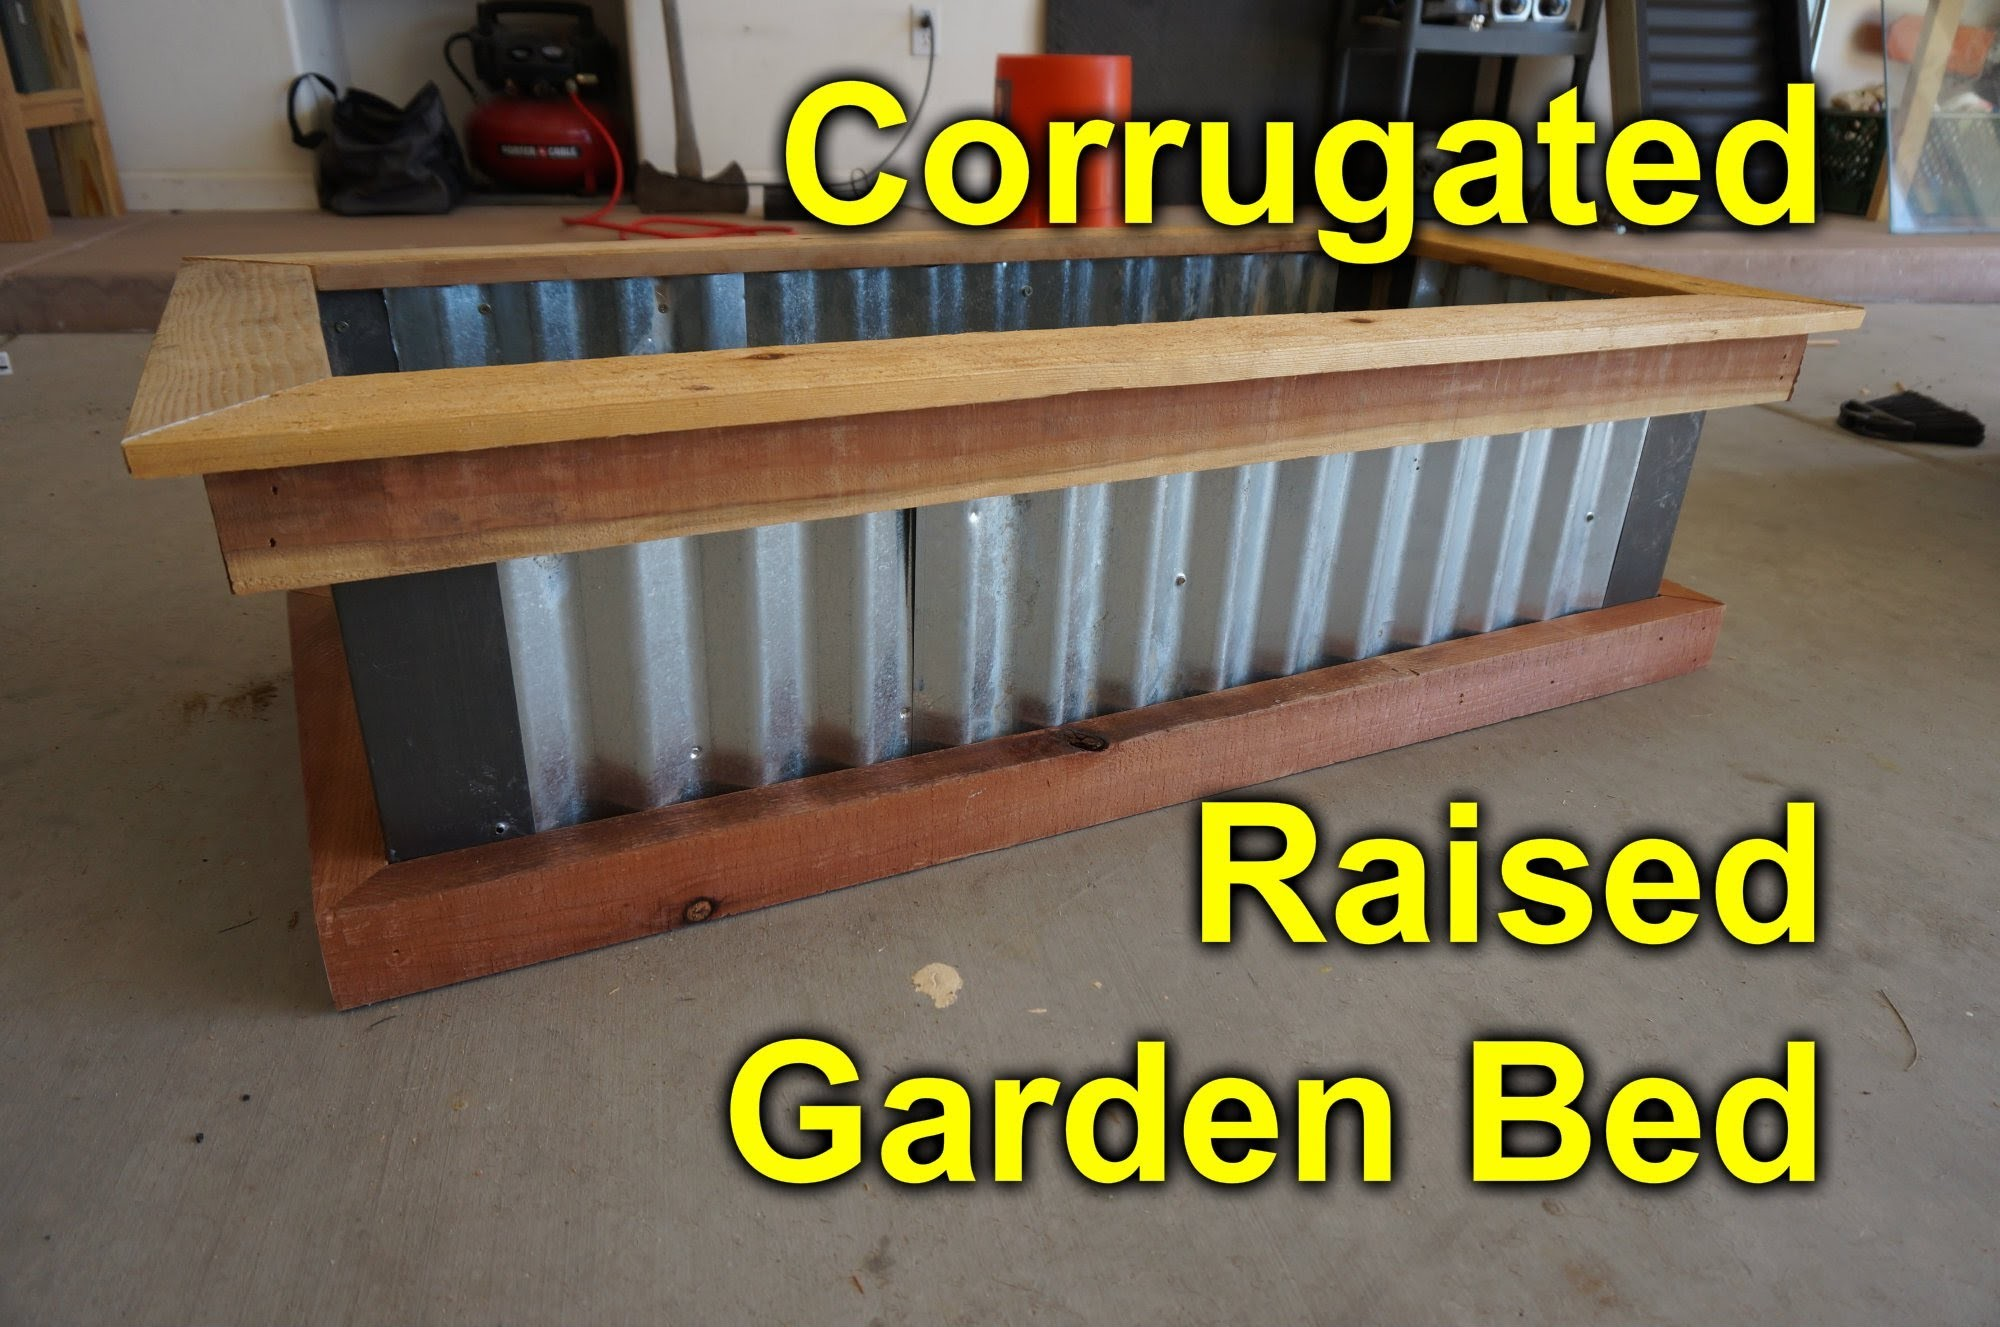 Corrugated raised garden bed - DIY Easy build project to beautify you garden